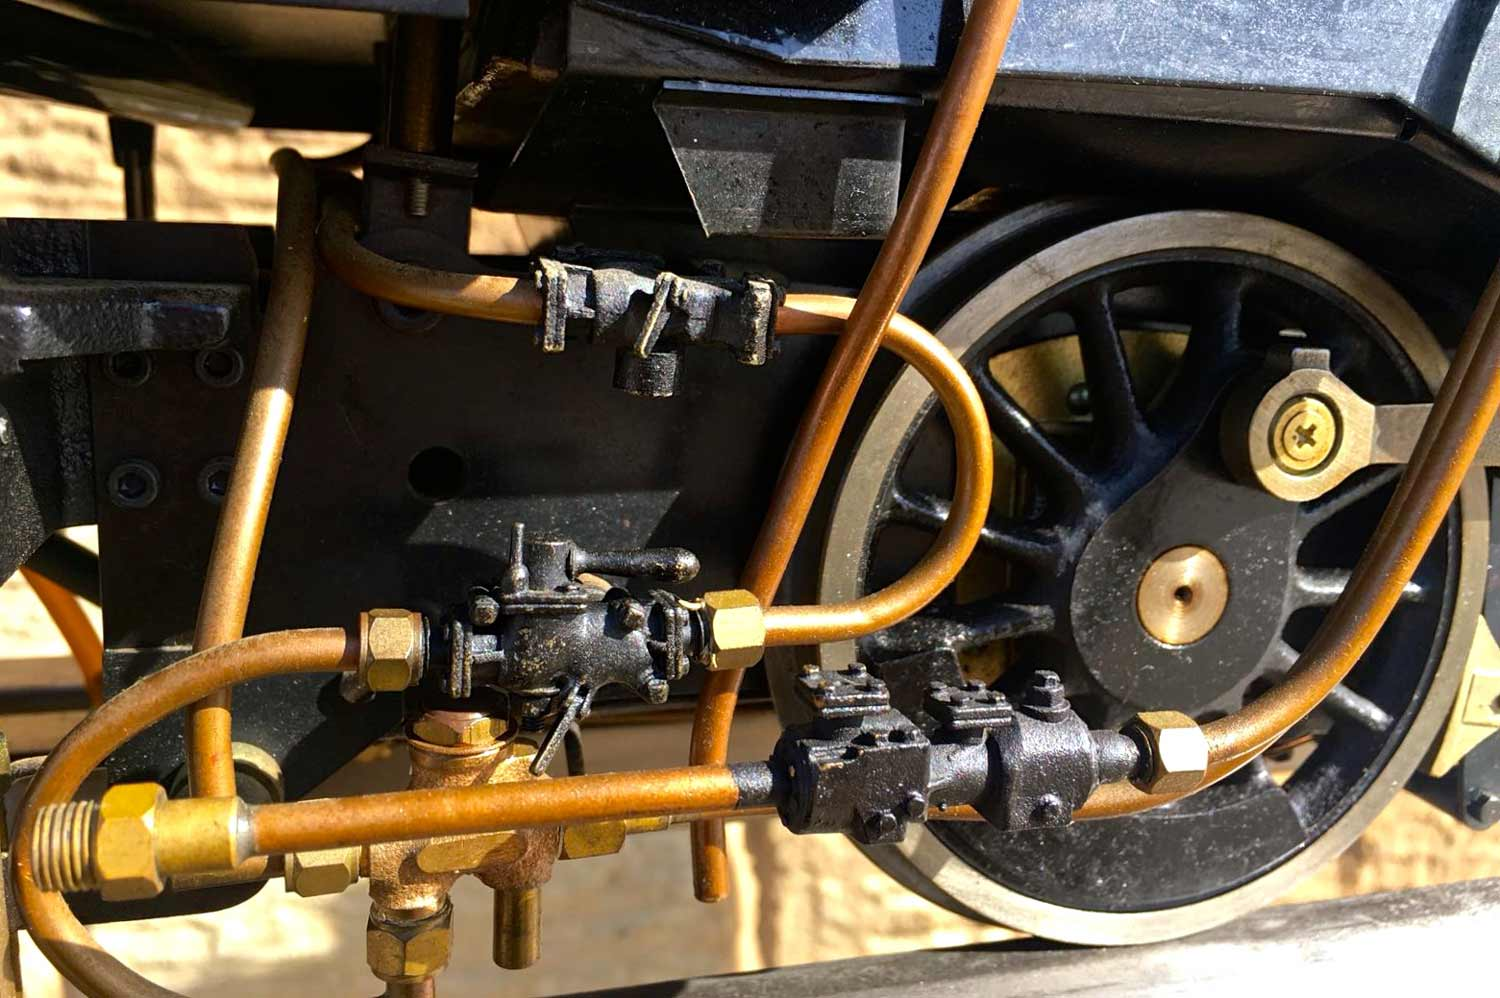 test 3-and-a-half-inch-BR-9F-OS-live-steam-locomotive-for-sale-21